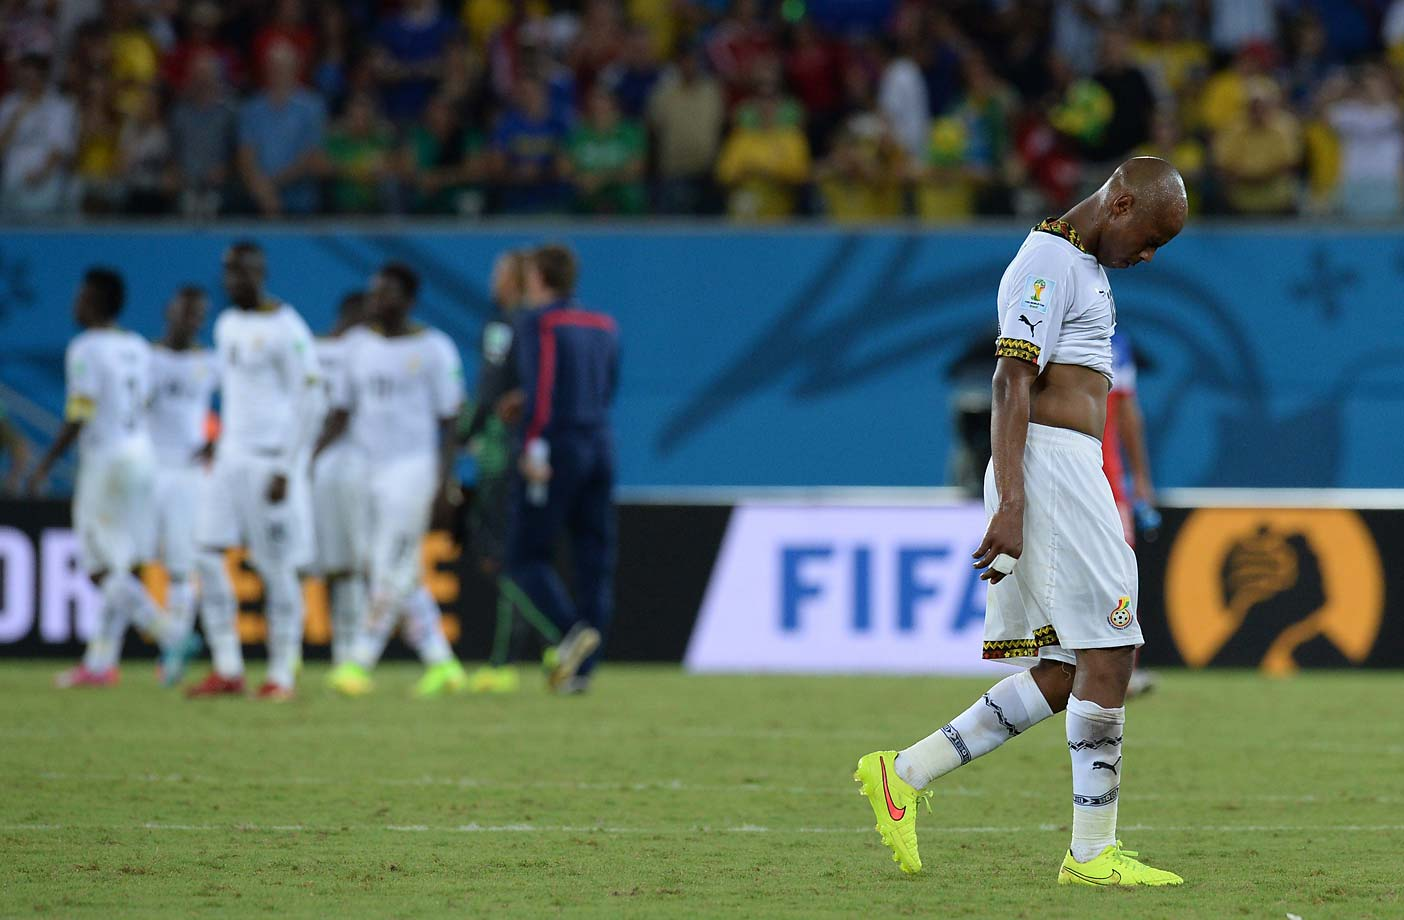 Ghana has its work cut out for it, having to face Germany on the heels of Monday's defeat.